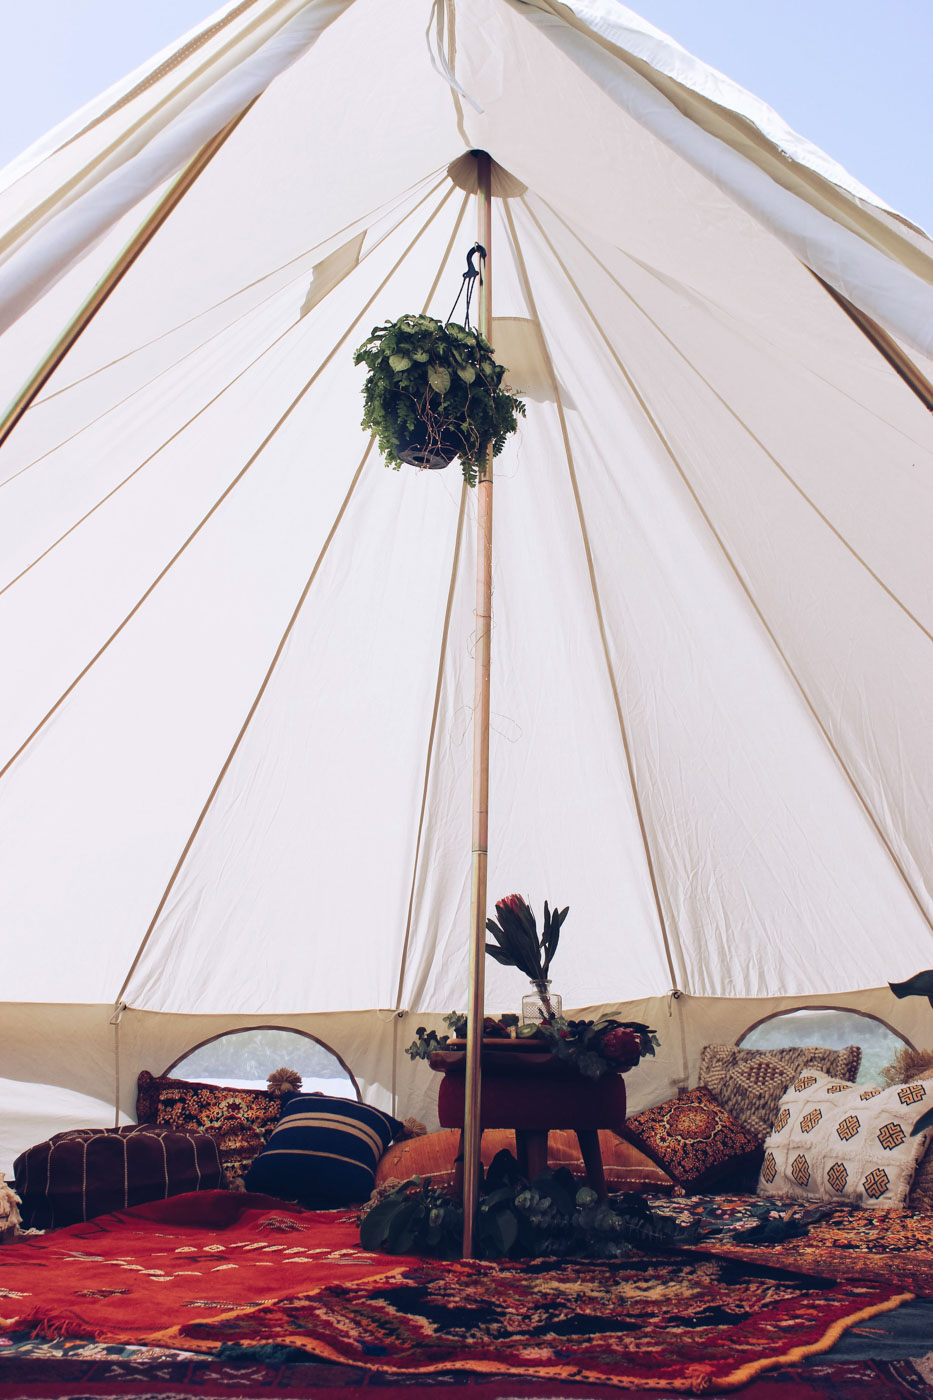 the_Collection_co_grazing_table_cairns_weddings_catering_grazing_platter_hire_pop_up_picnic_bell_tent_event_hire_styling-46-2.jpg